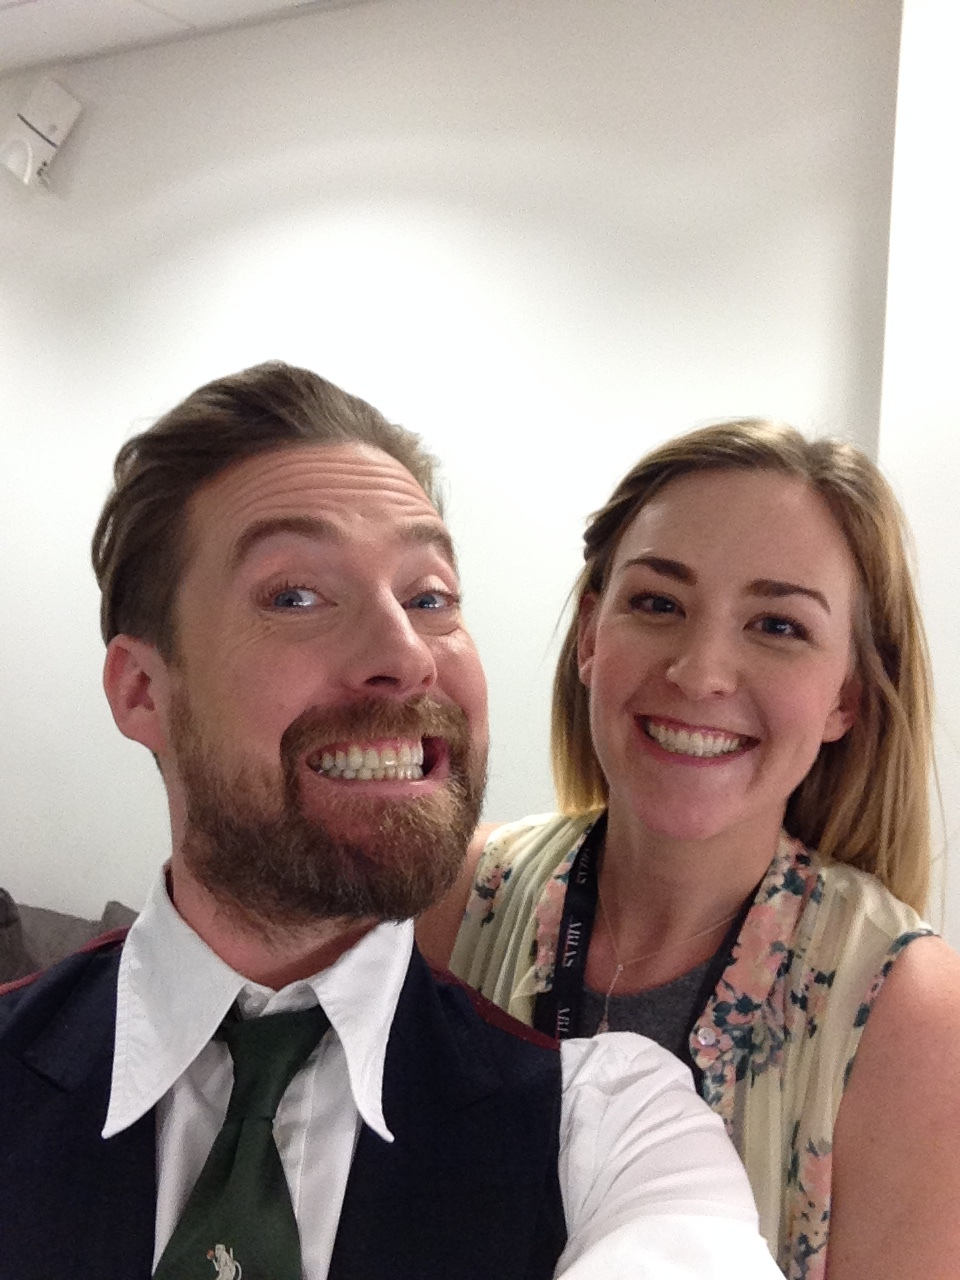 Makeup for Ricky Wilson from the Kaiser Chiefs.  Backstage at the First Direct Arena in Leeds